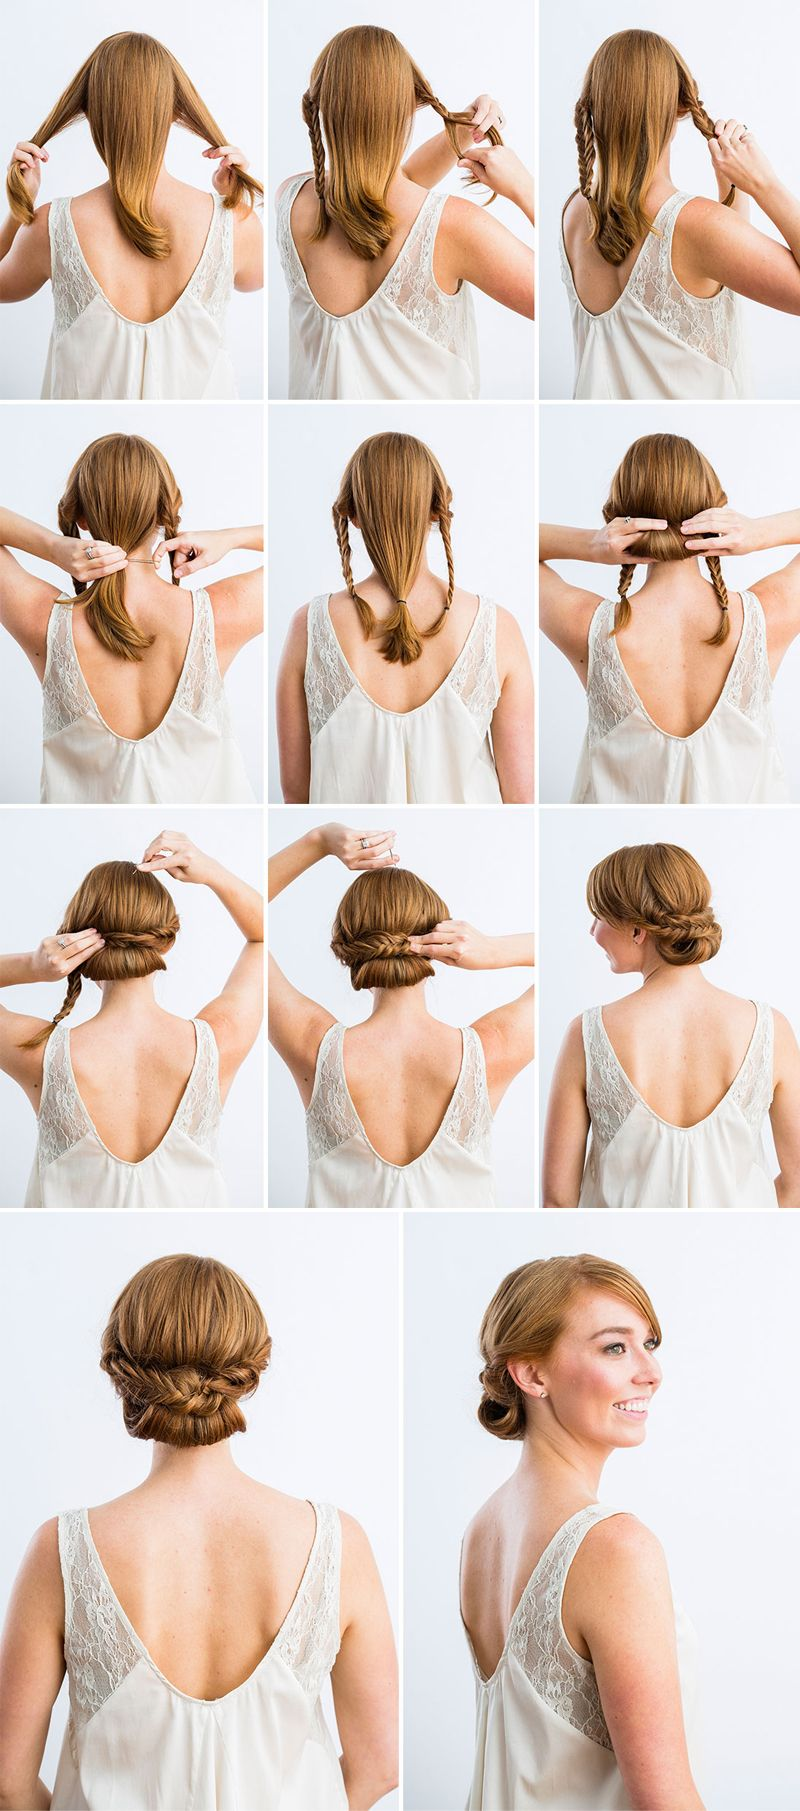 10 Best DIY Wedding Hairstyles With Tutorials All About Hair And